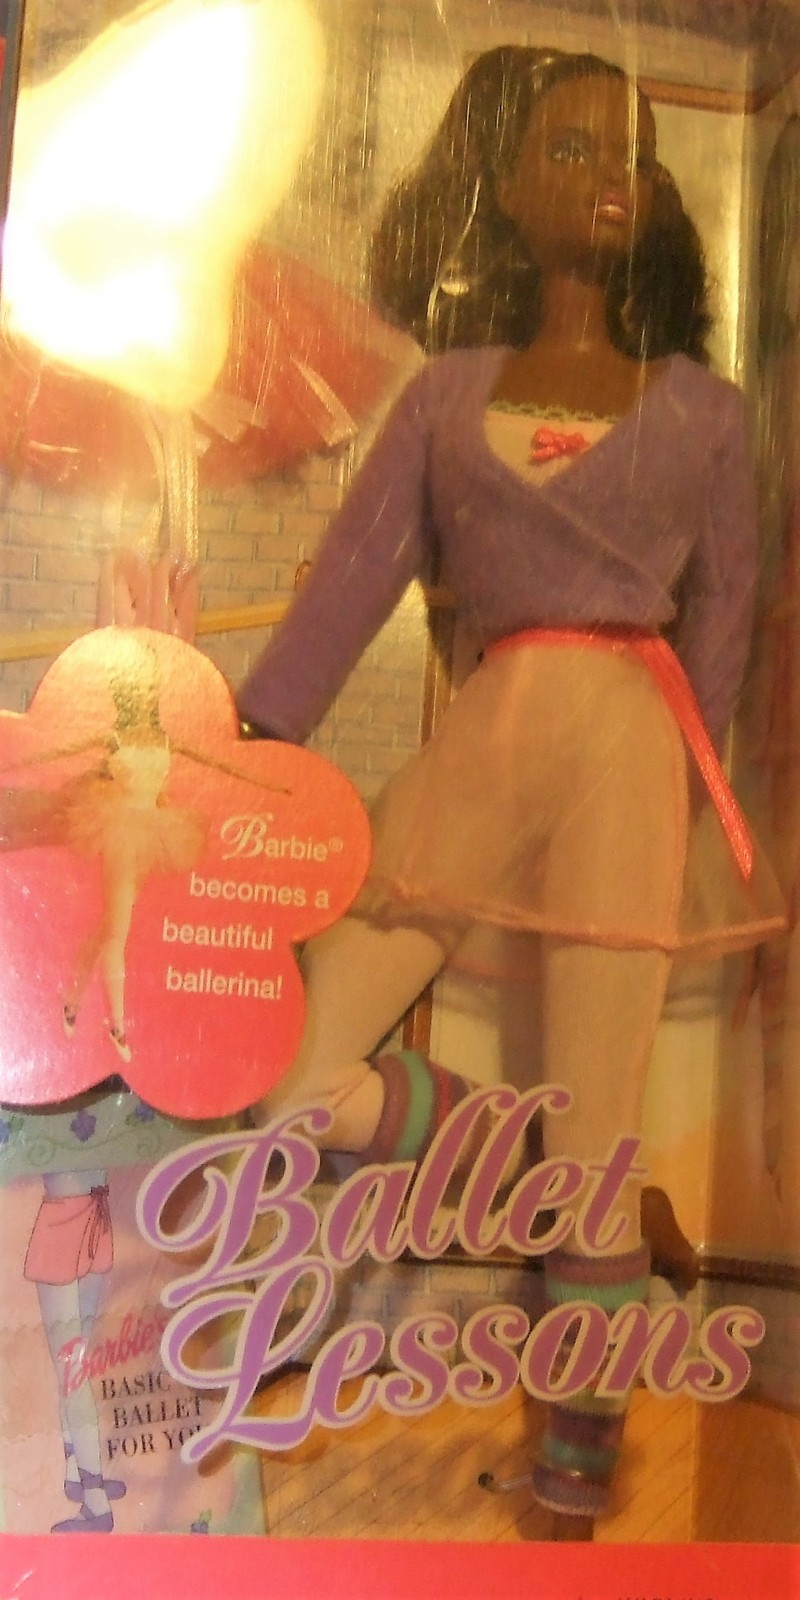 Barbie Doll - Ballet Lessons AA